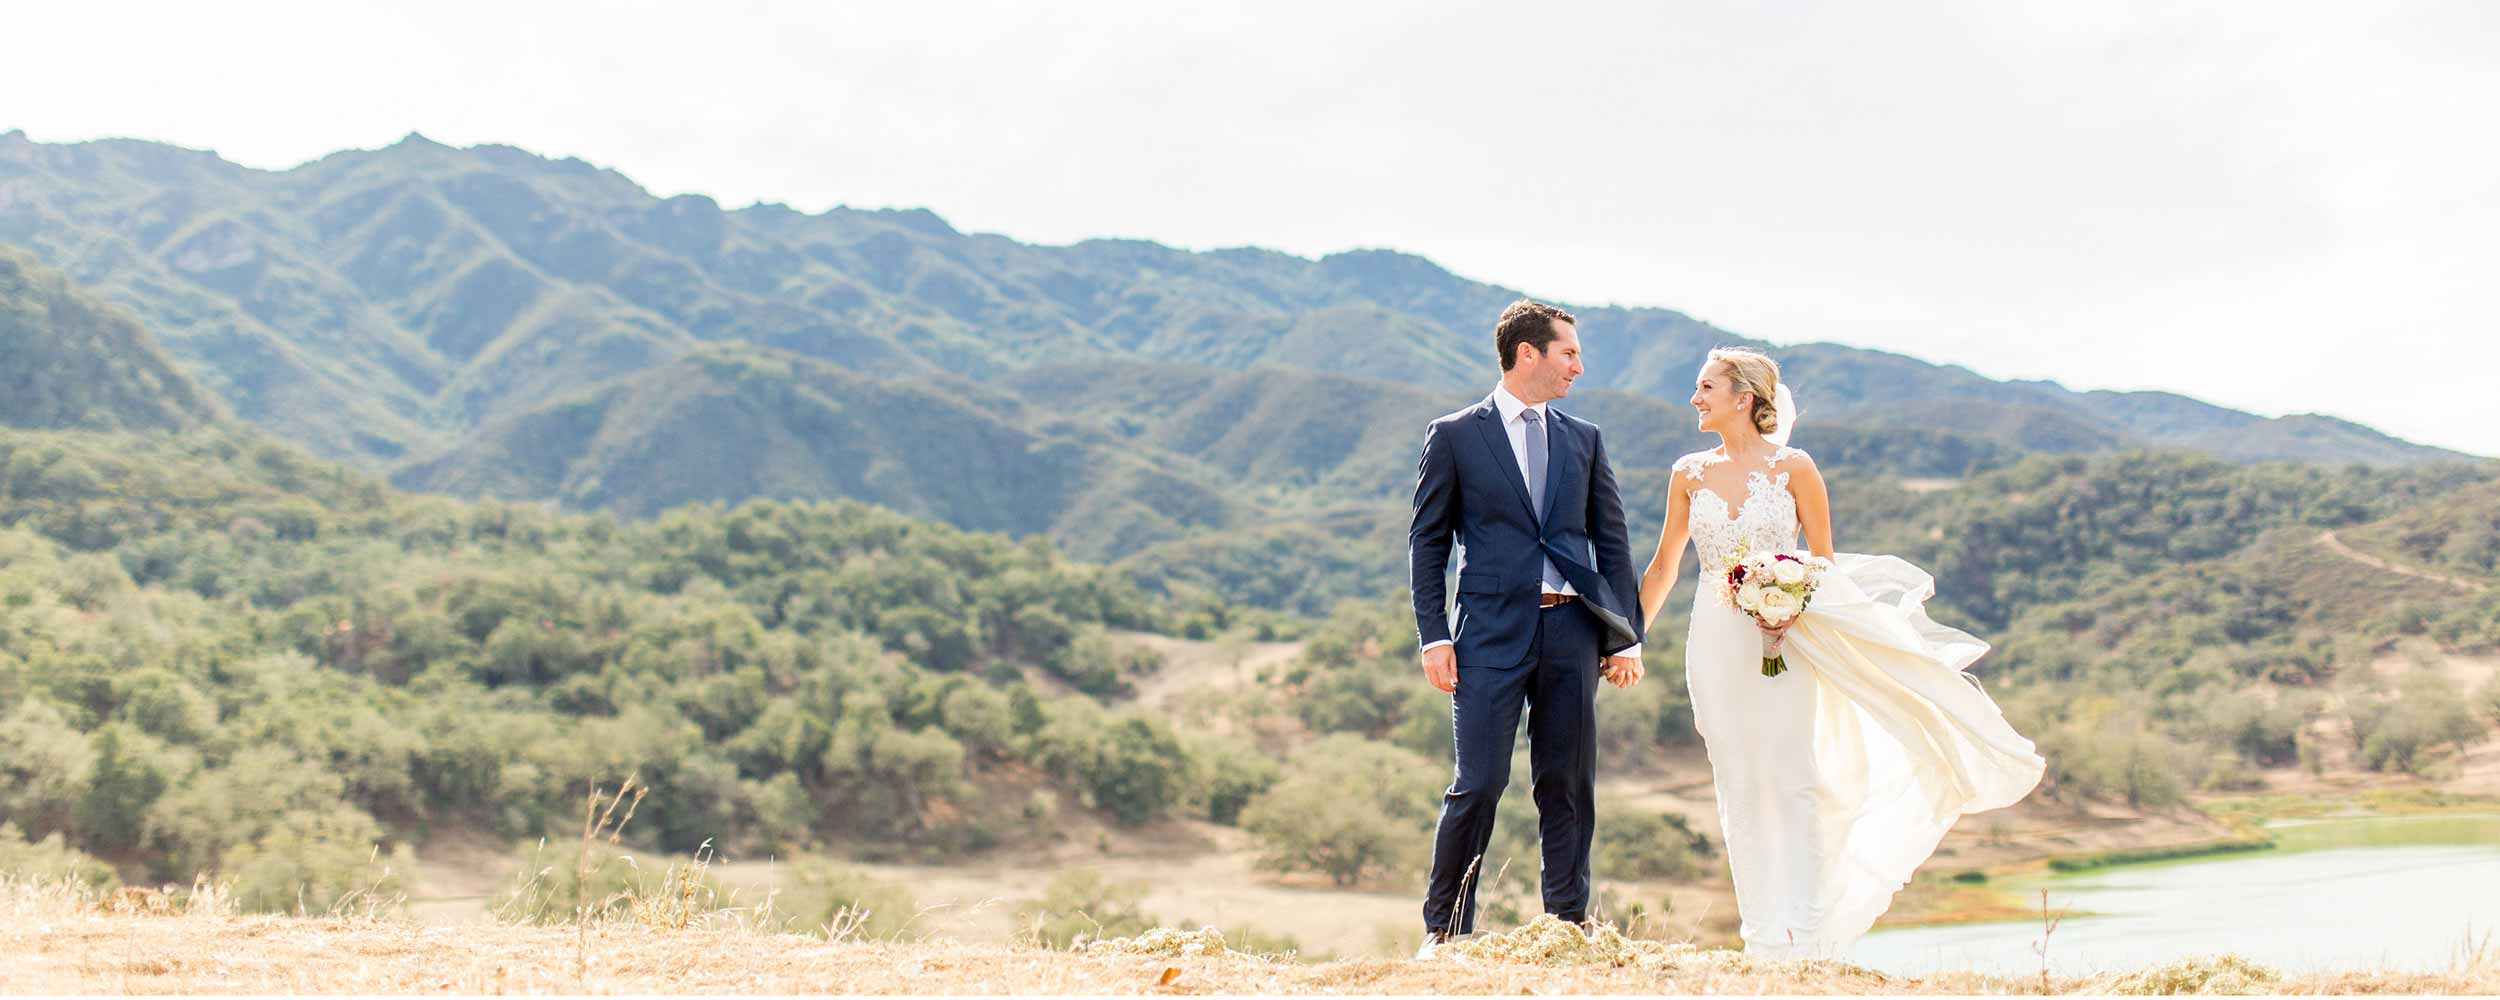 Alisal weddings - Alisal Resort in Solvang California